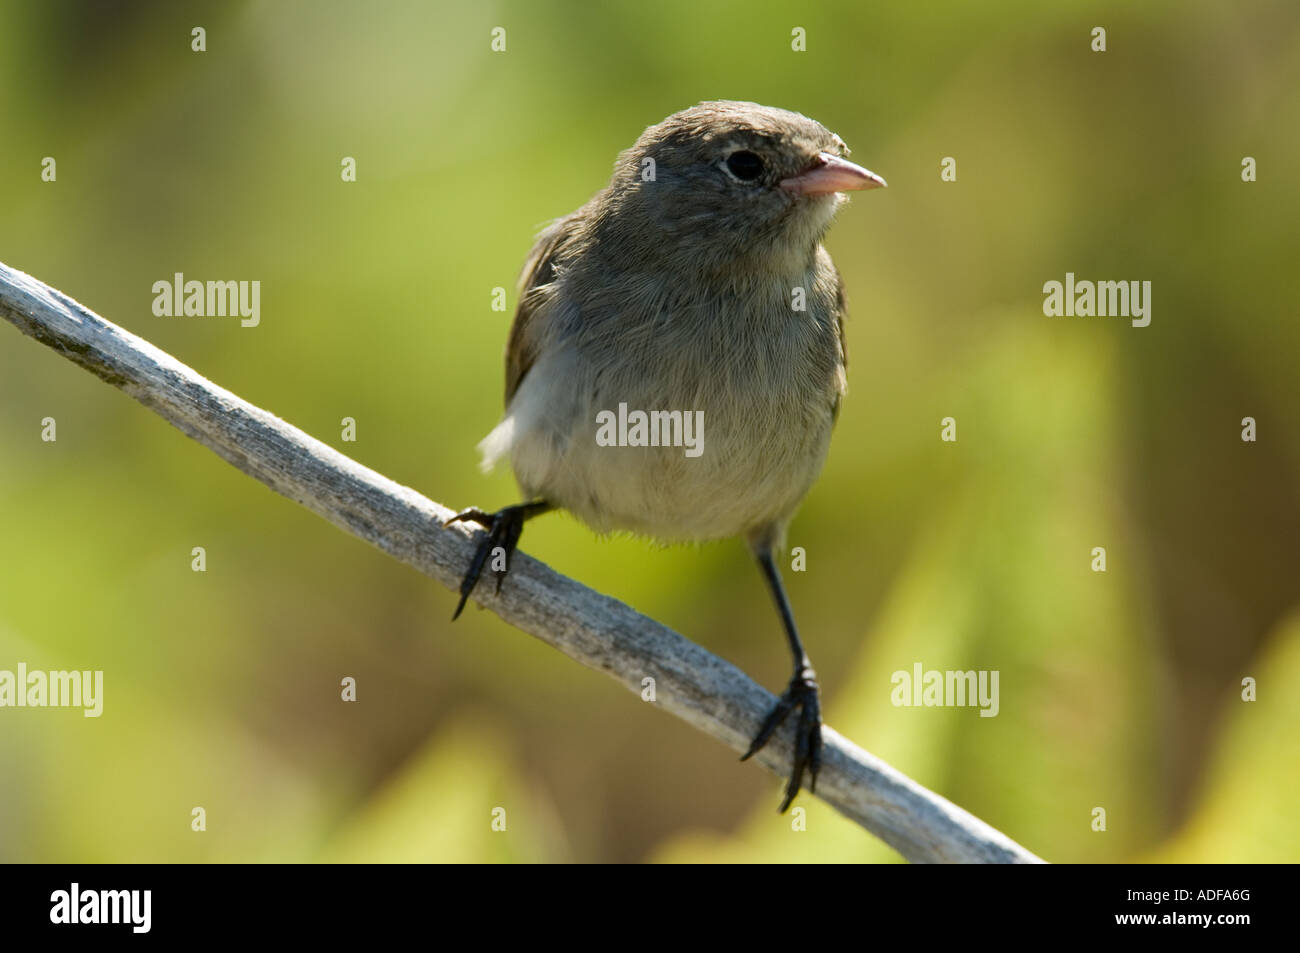 Grey Warbler Finch (Certhidea fusca) perched on branch Darwin Bay Genovesa Galapagos Ecuador Pacific Ocean South - Stock Image